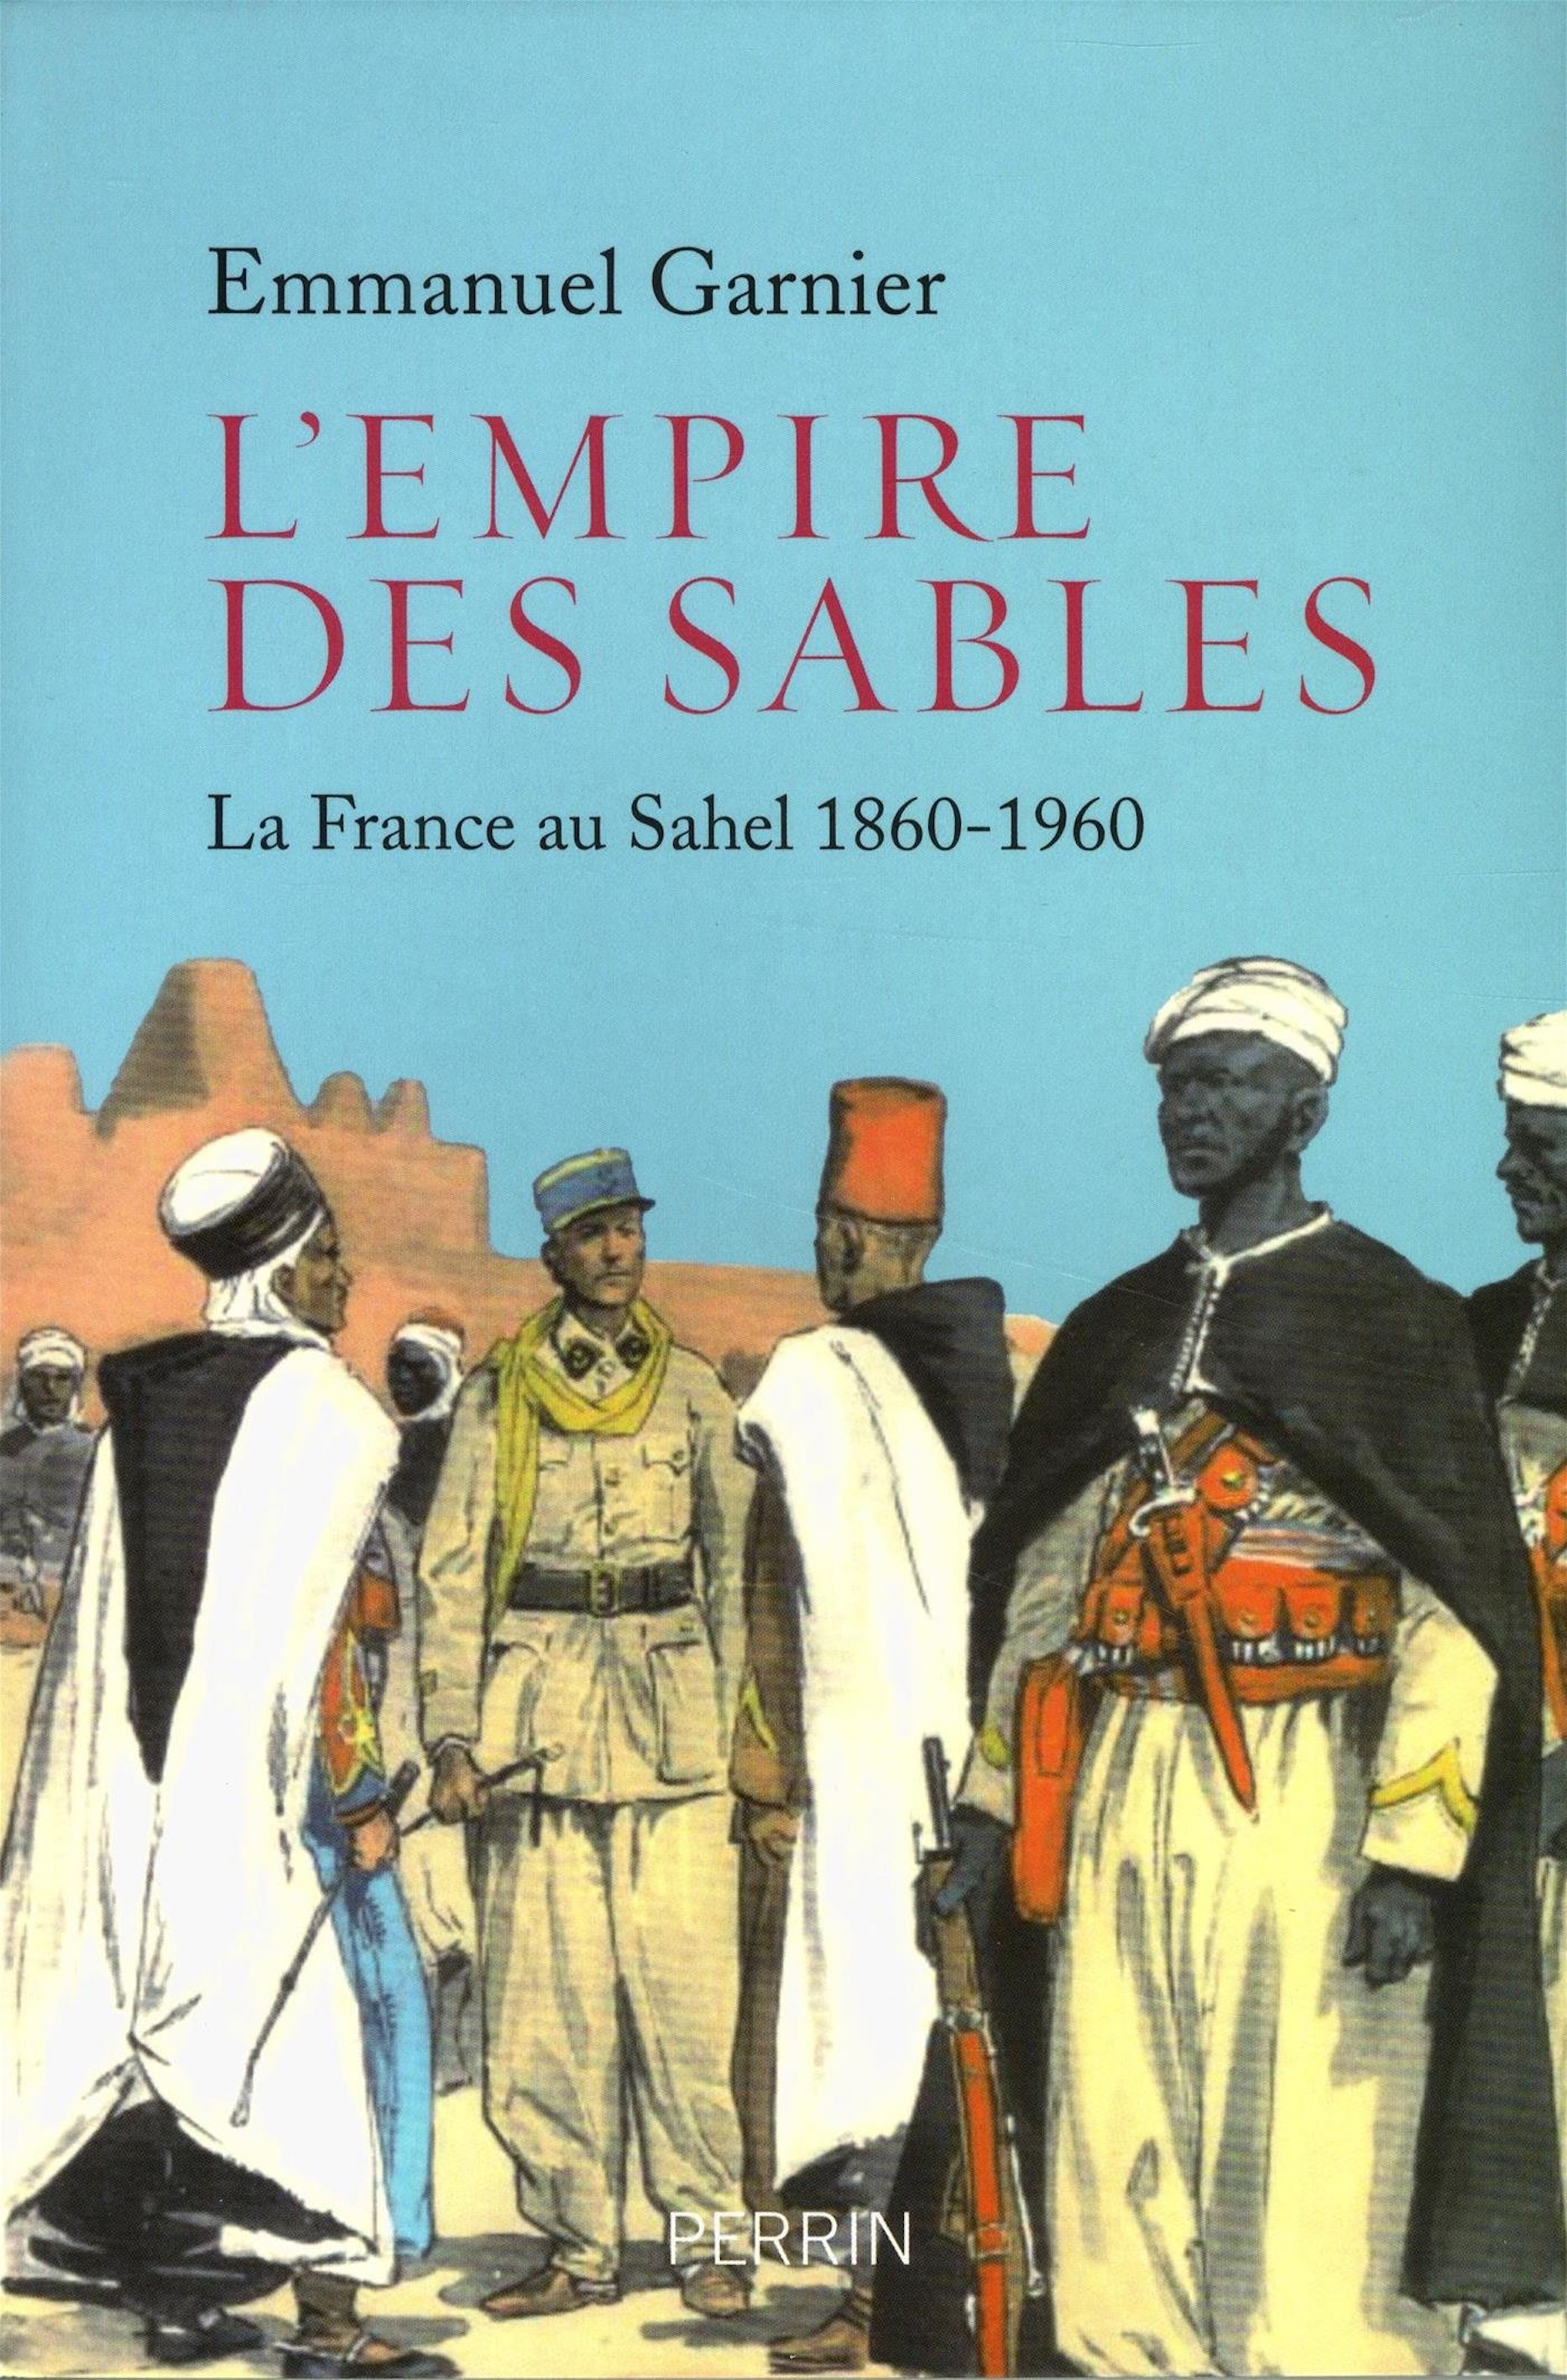 Emmanuel Garnier, L'Empire des sables - La France au Sahel 1860-1960